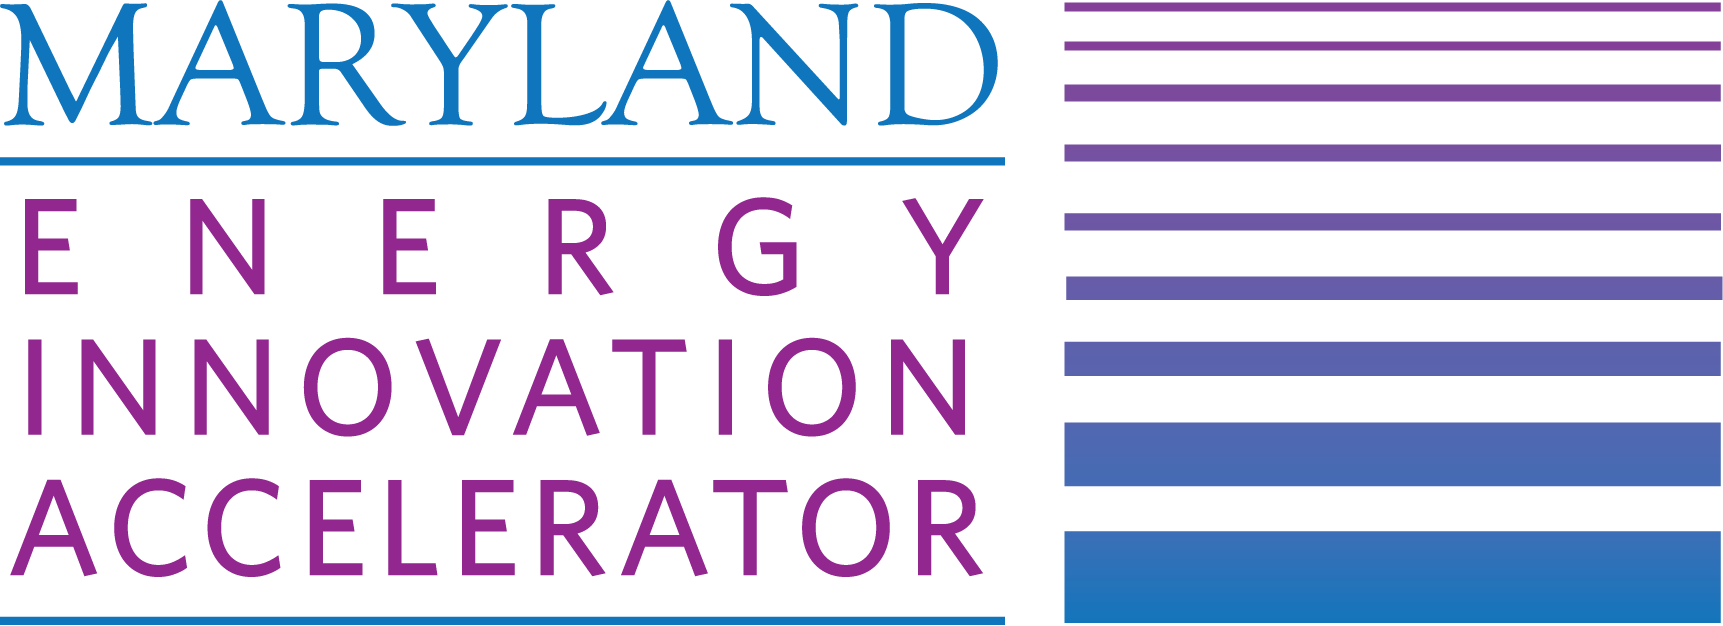 Final MD Energy Innovation Acc